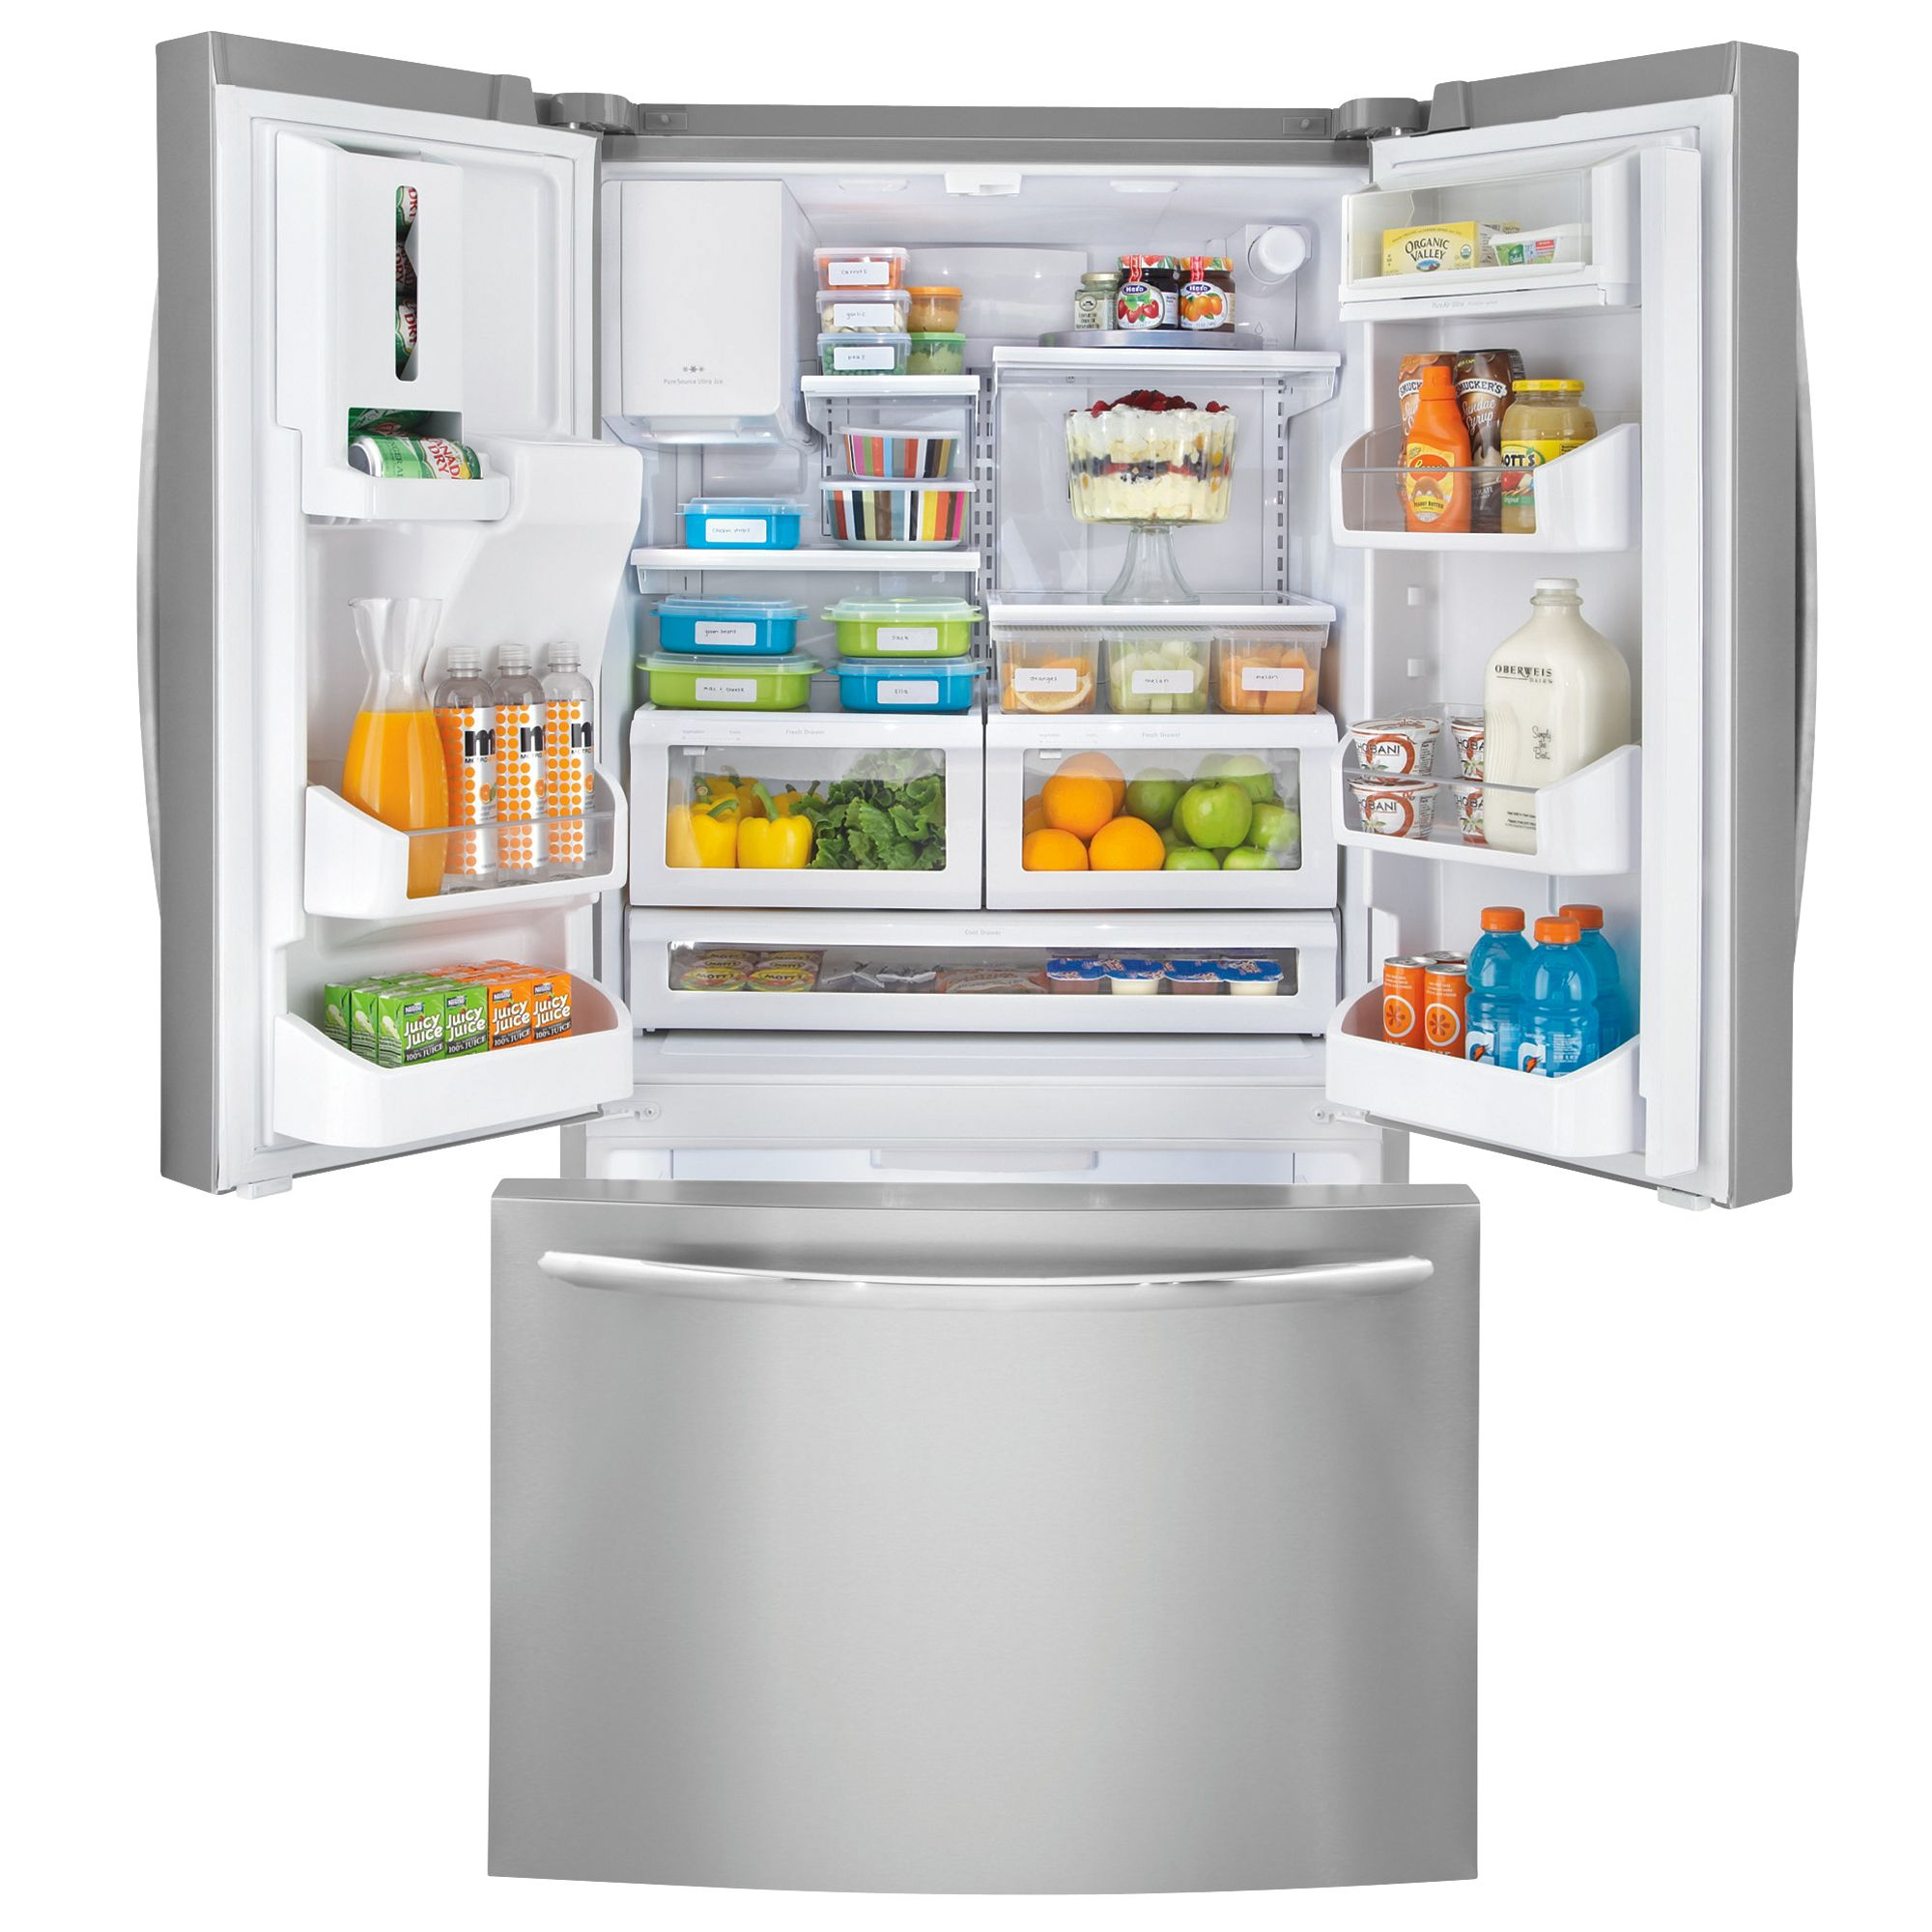 Frigidaire 27.8 cu. ft. French-Door Bottom-Freezer Refrigerator (FGHB2869L)